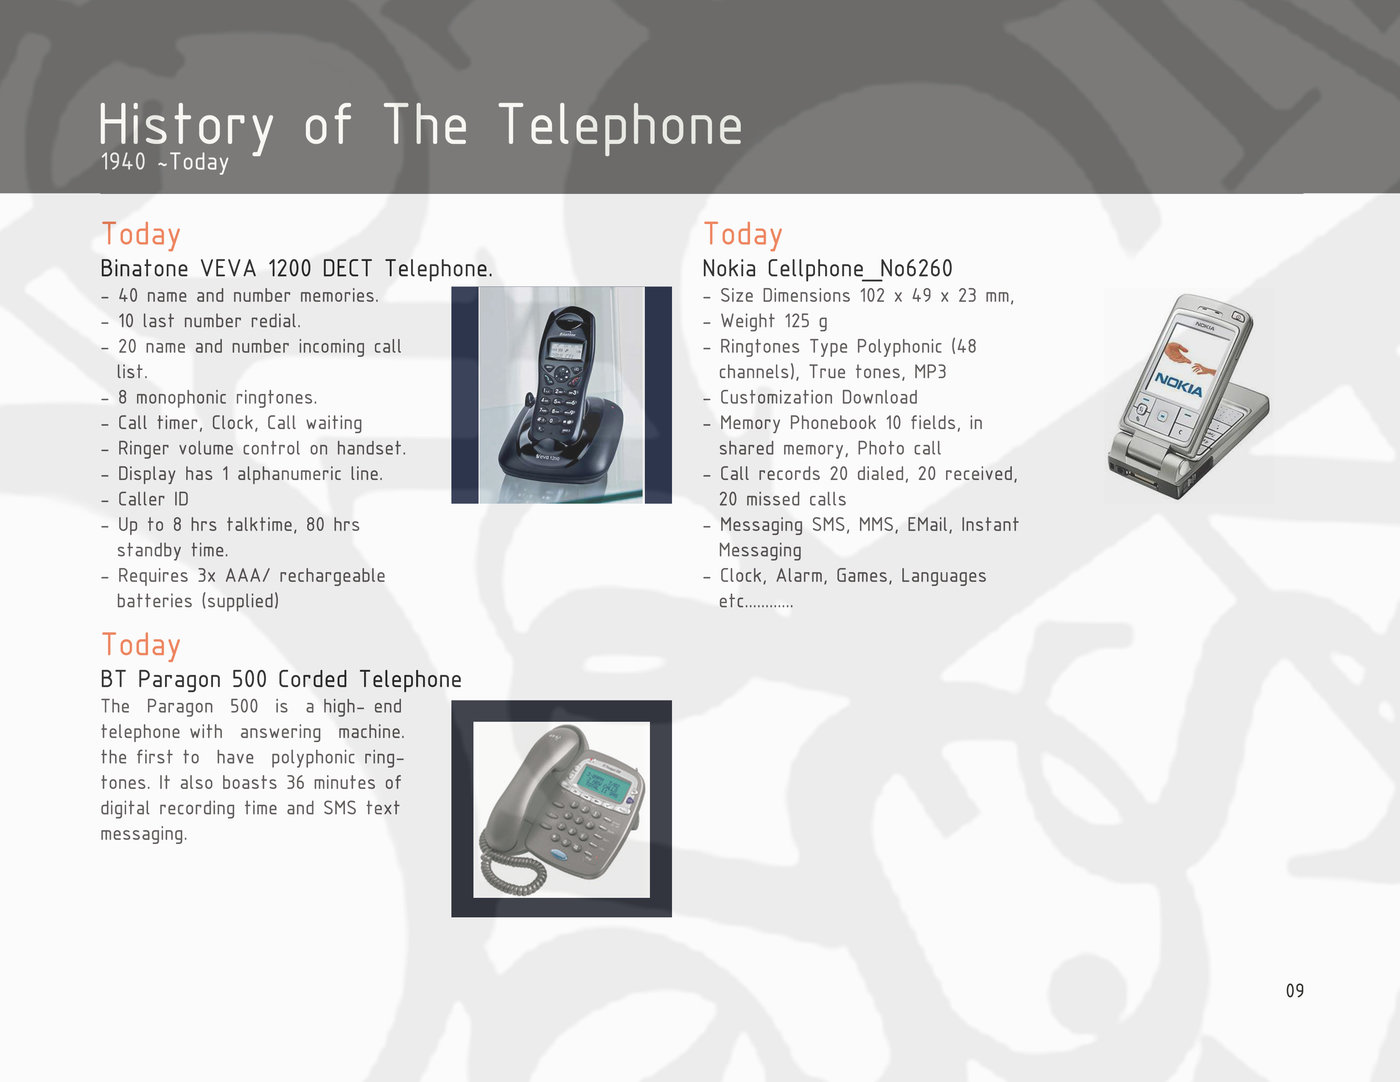 History of Telephone by Pui Chi Lam at Coroflot com